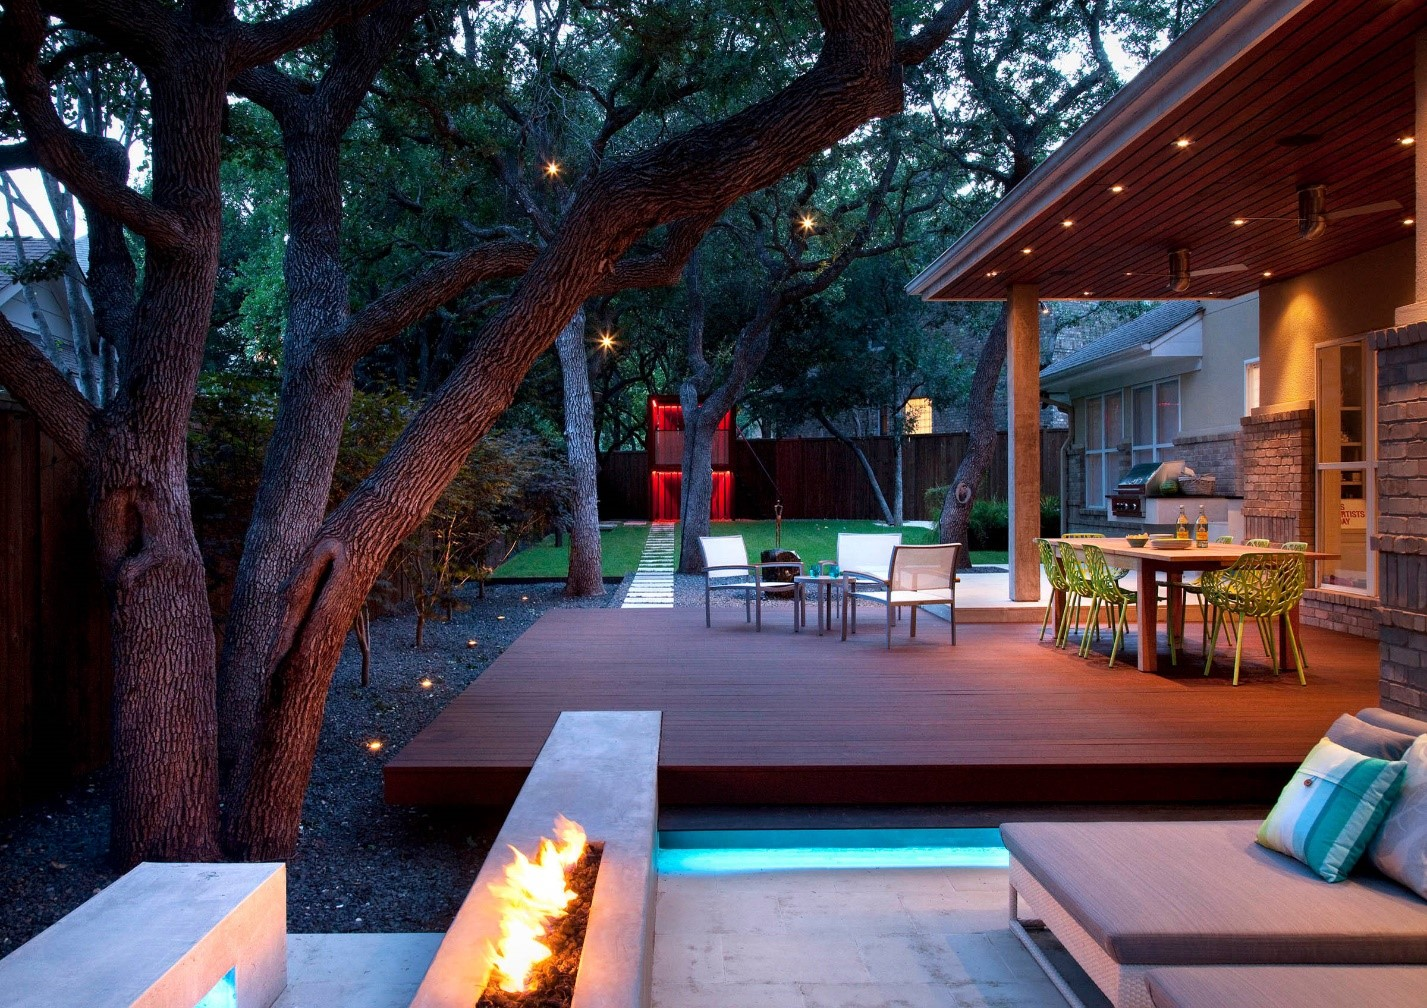 Making the most of your Backyard during Freezing Weather